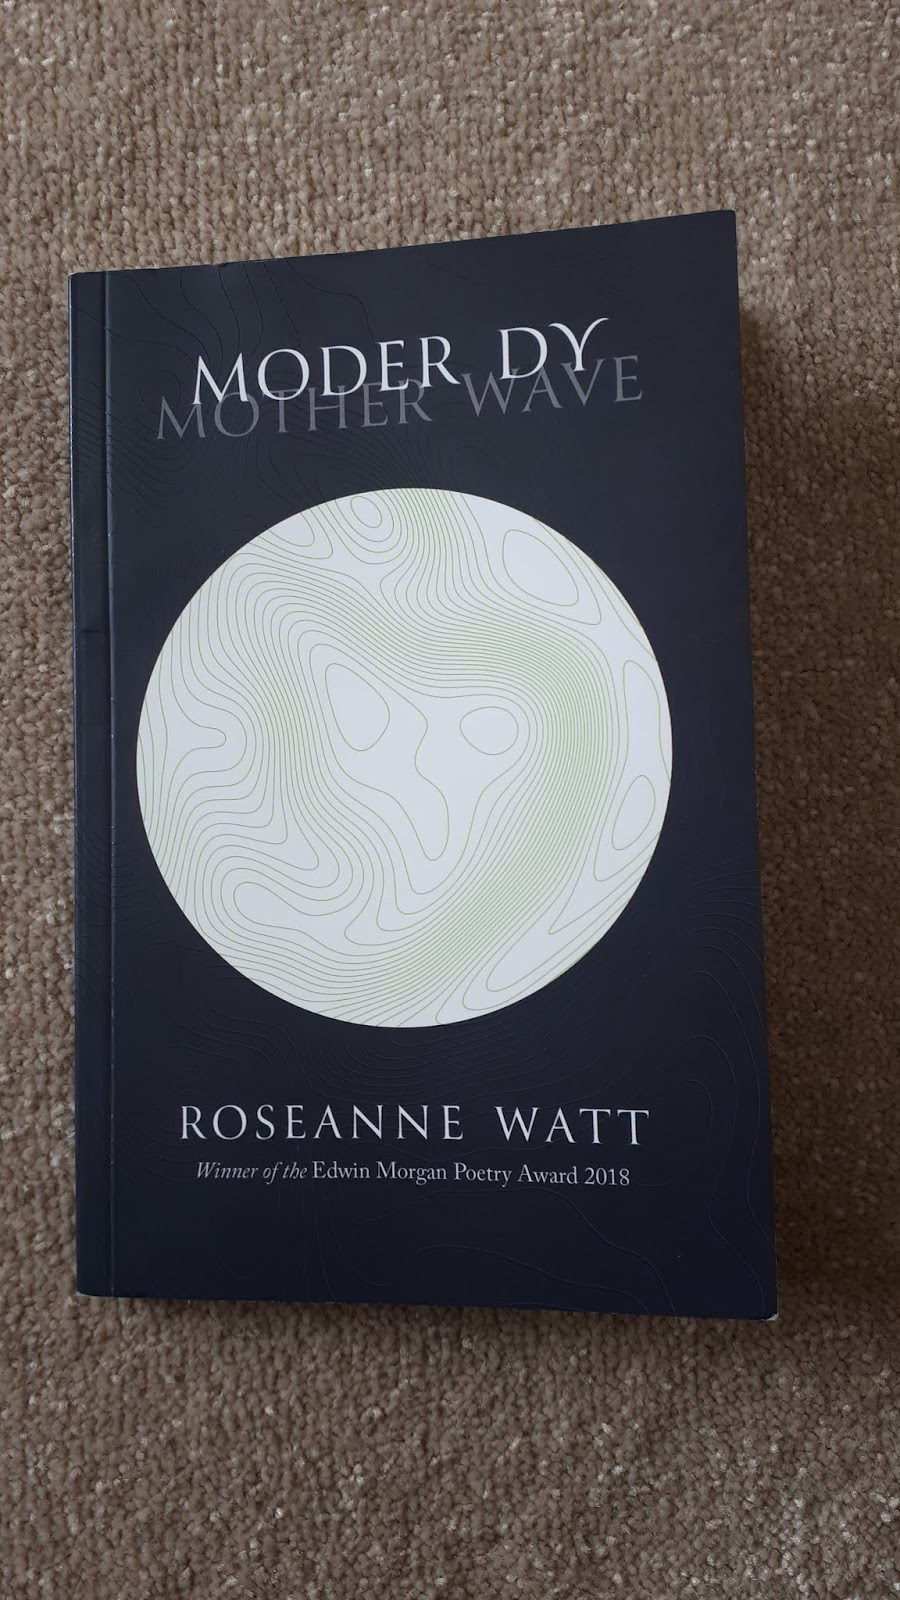 Desperate Reader: Moder Dy - Roseanne Watt